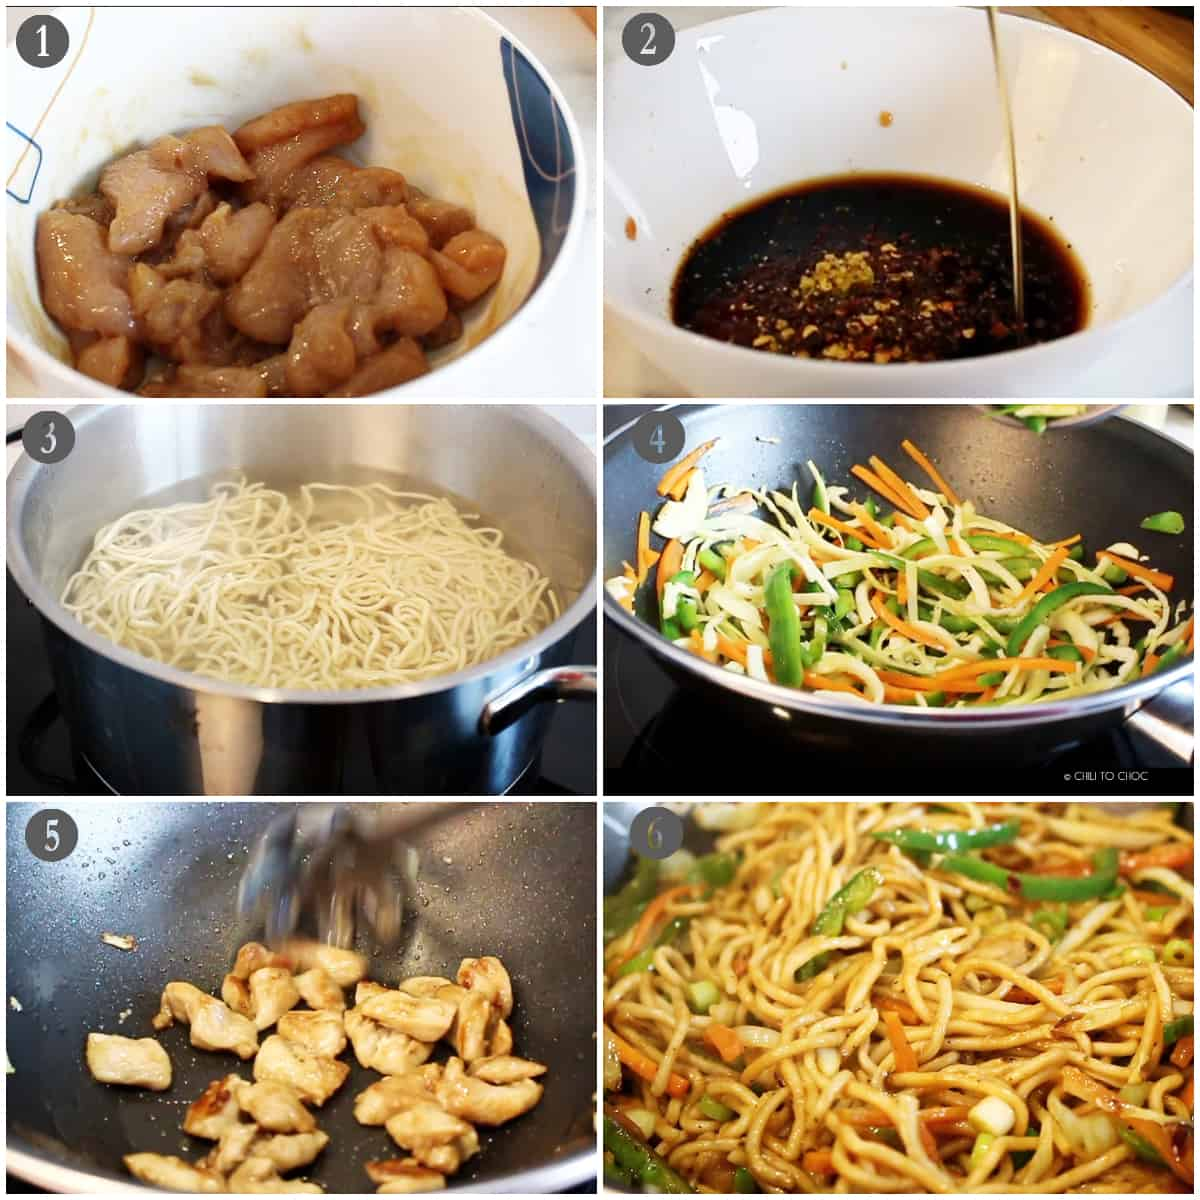 Step by step instructions on how to make chicken chow mein